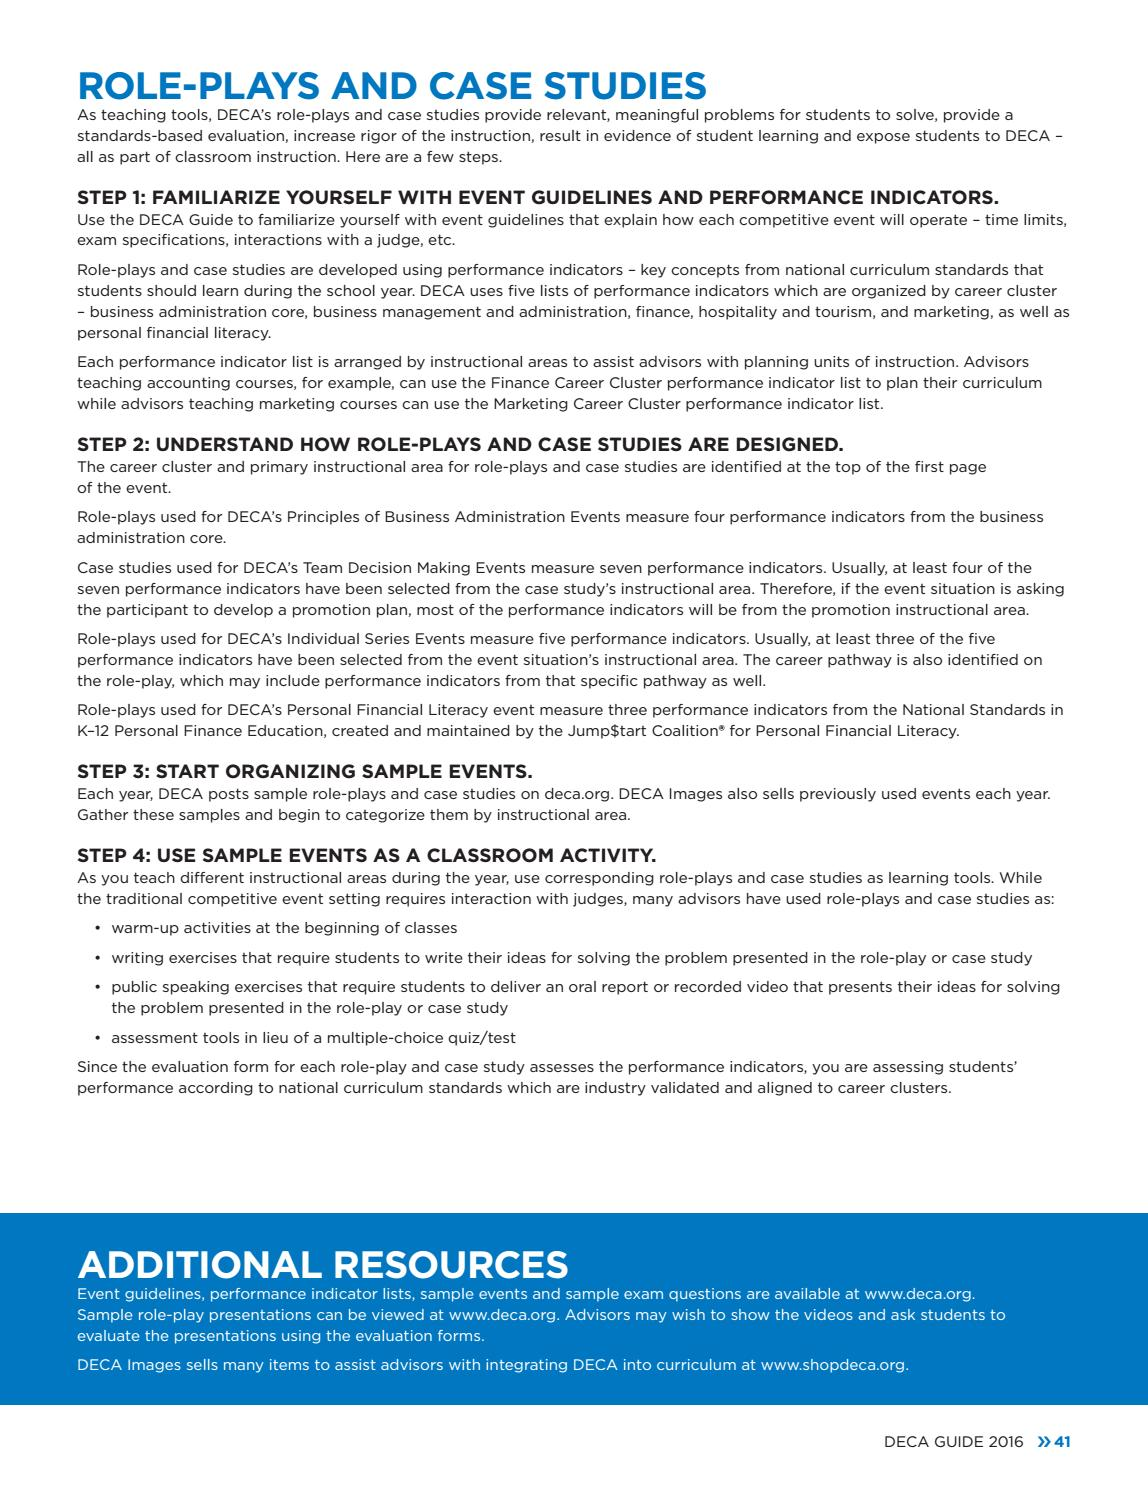 deca guide 2016 17 by deca inc page 43 issuu